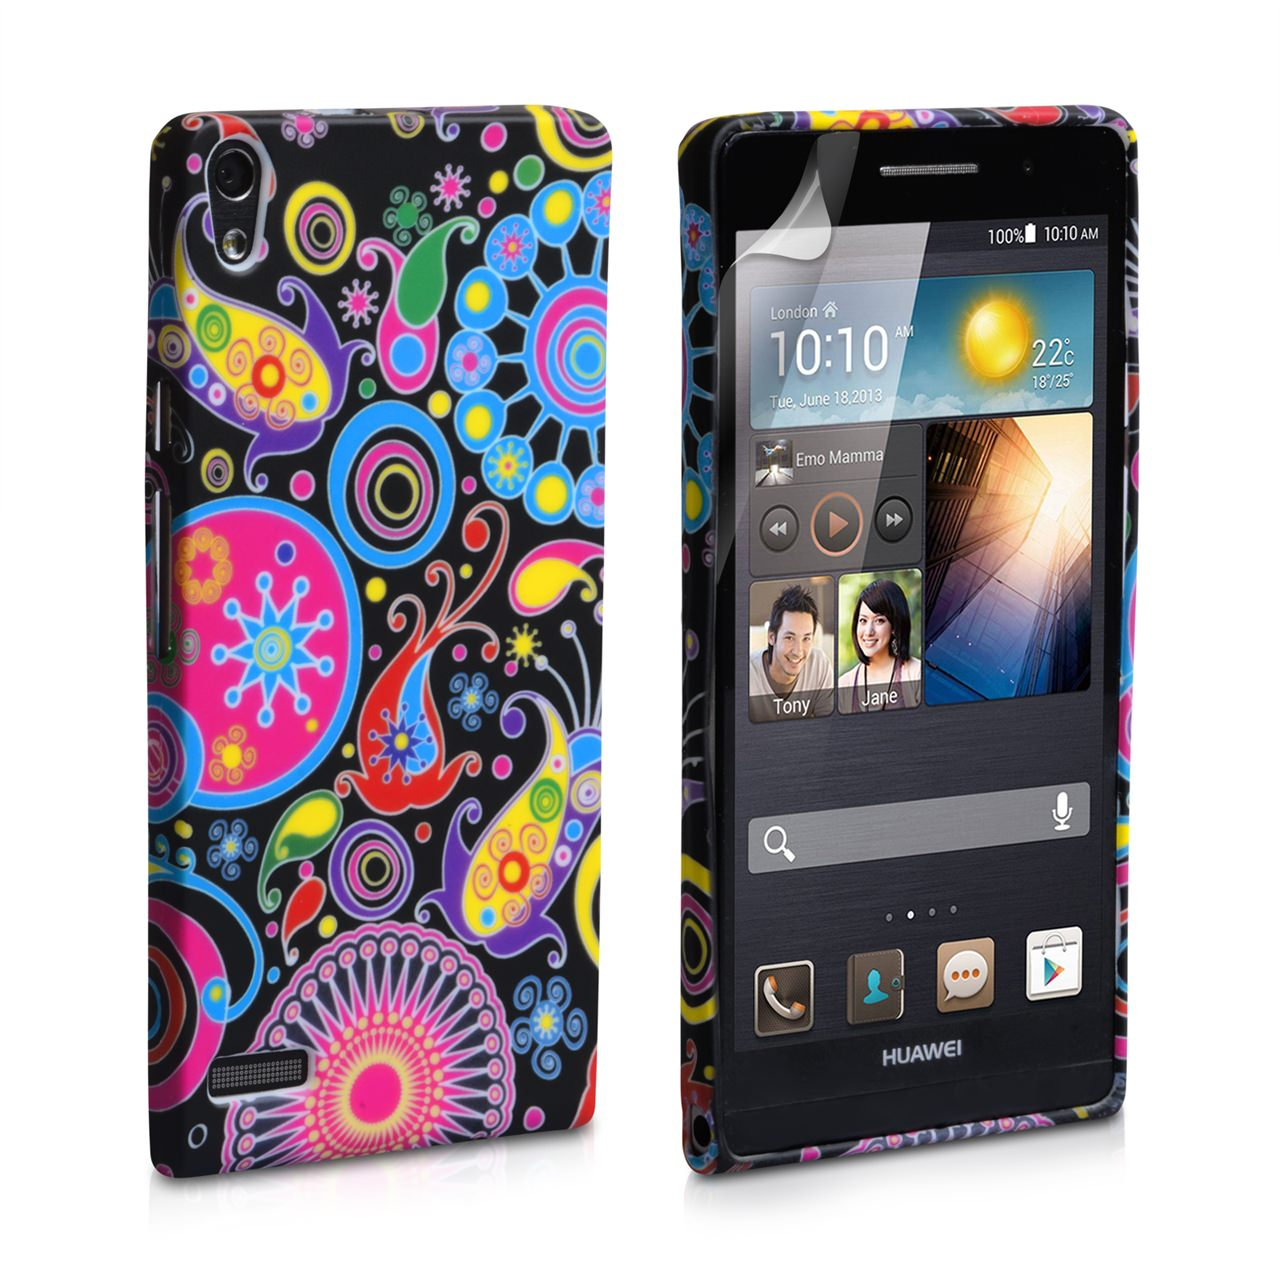 YouSave Accessories Huawei Ascend P6 Jellyfish Silicone Gel Case